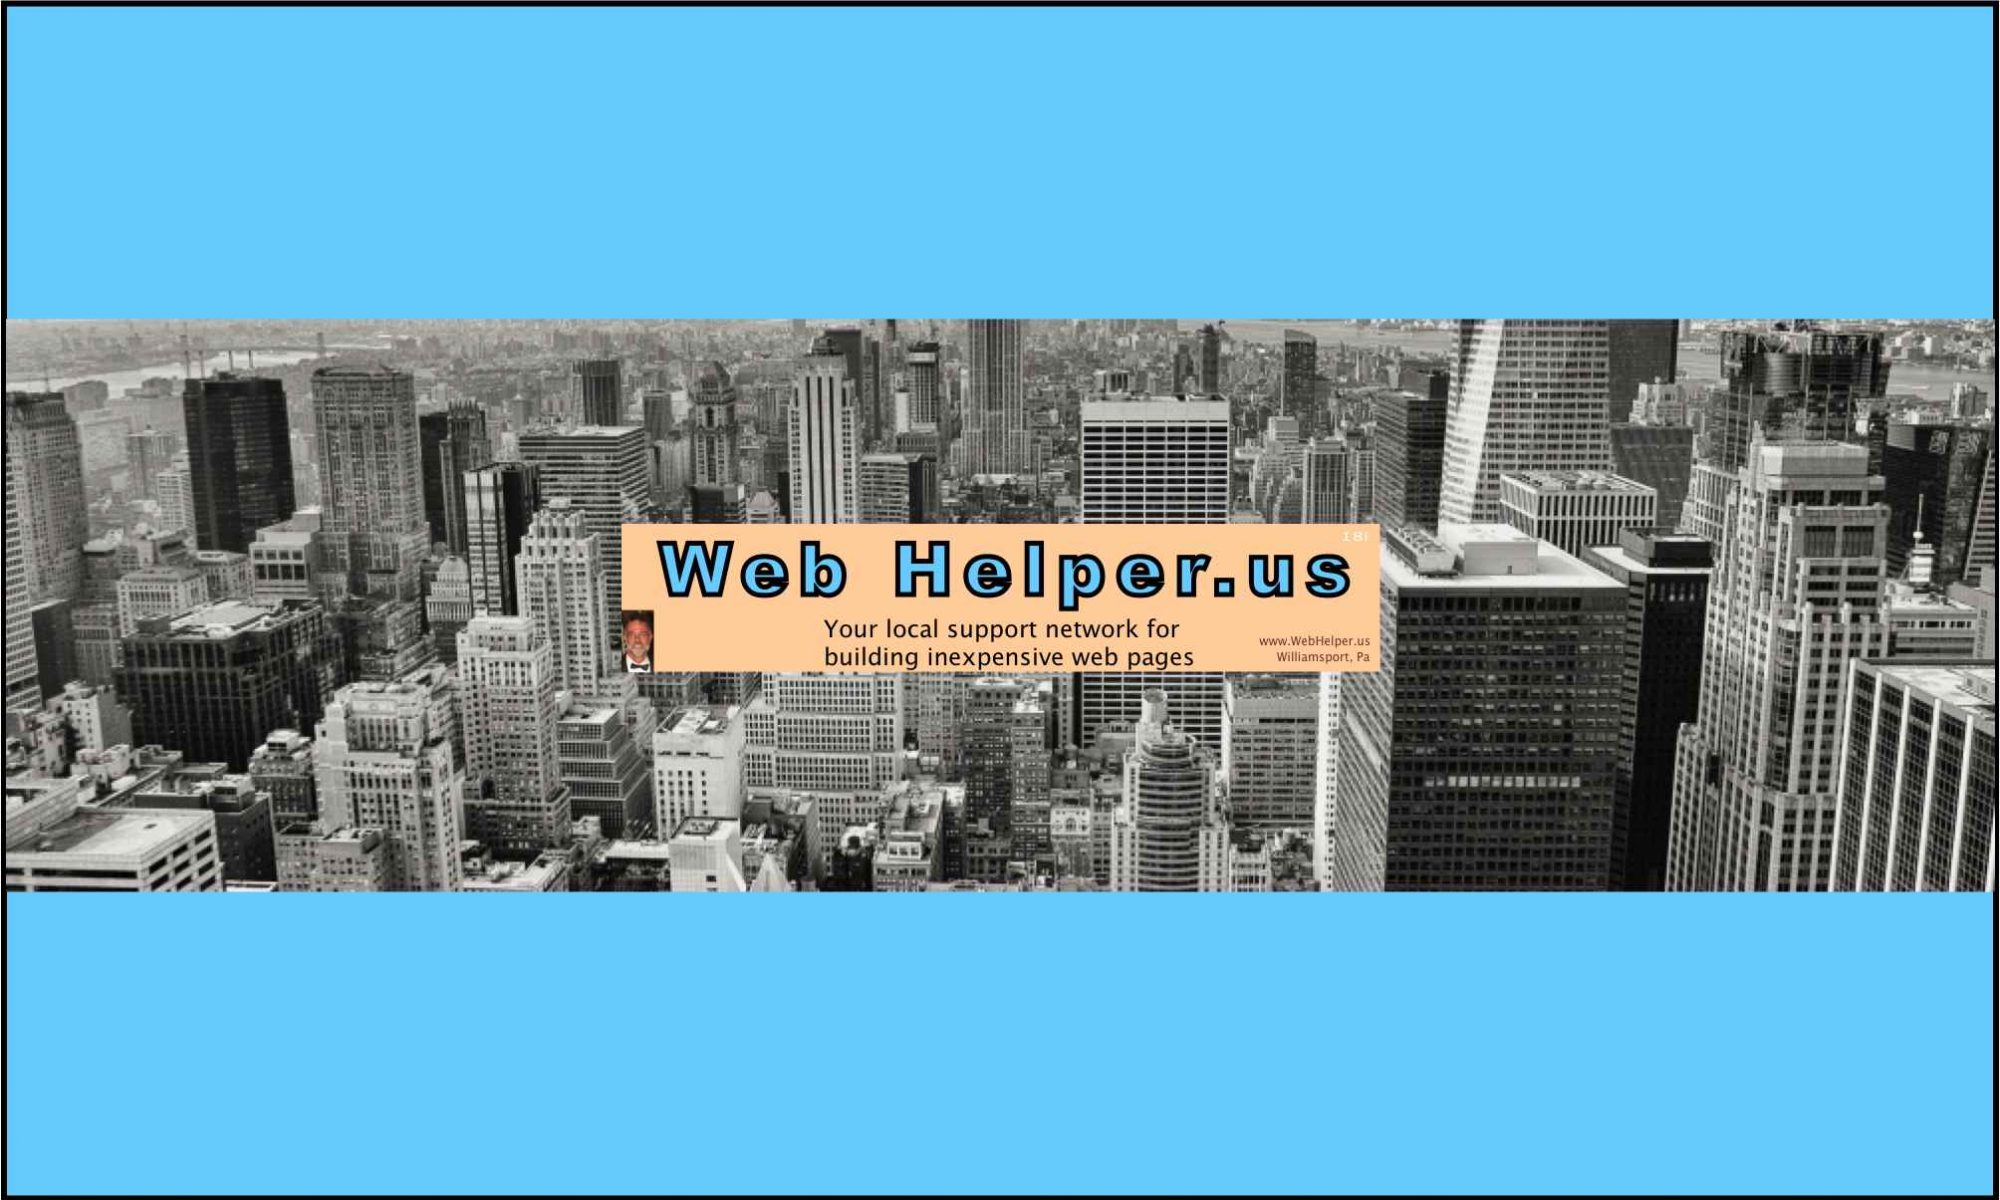 Web Helper.us